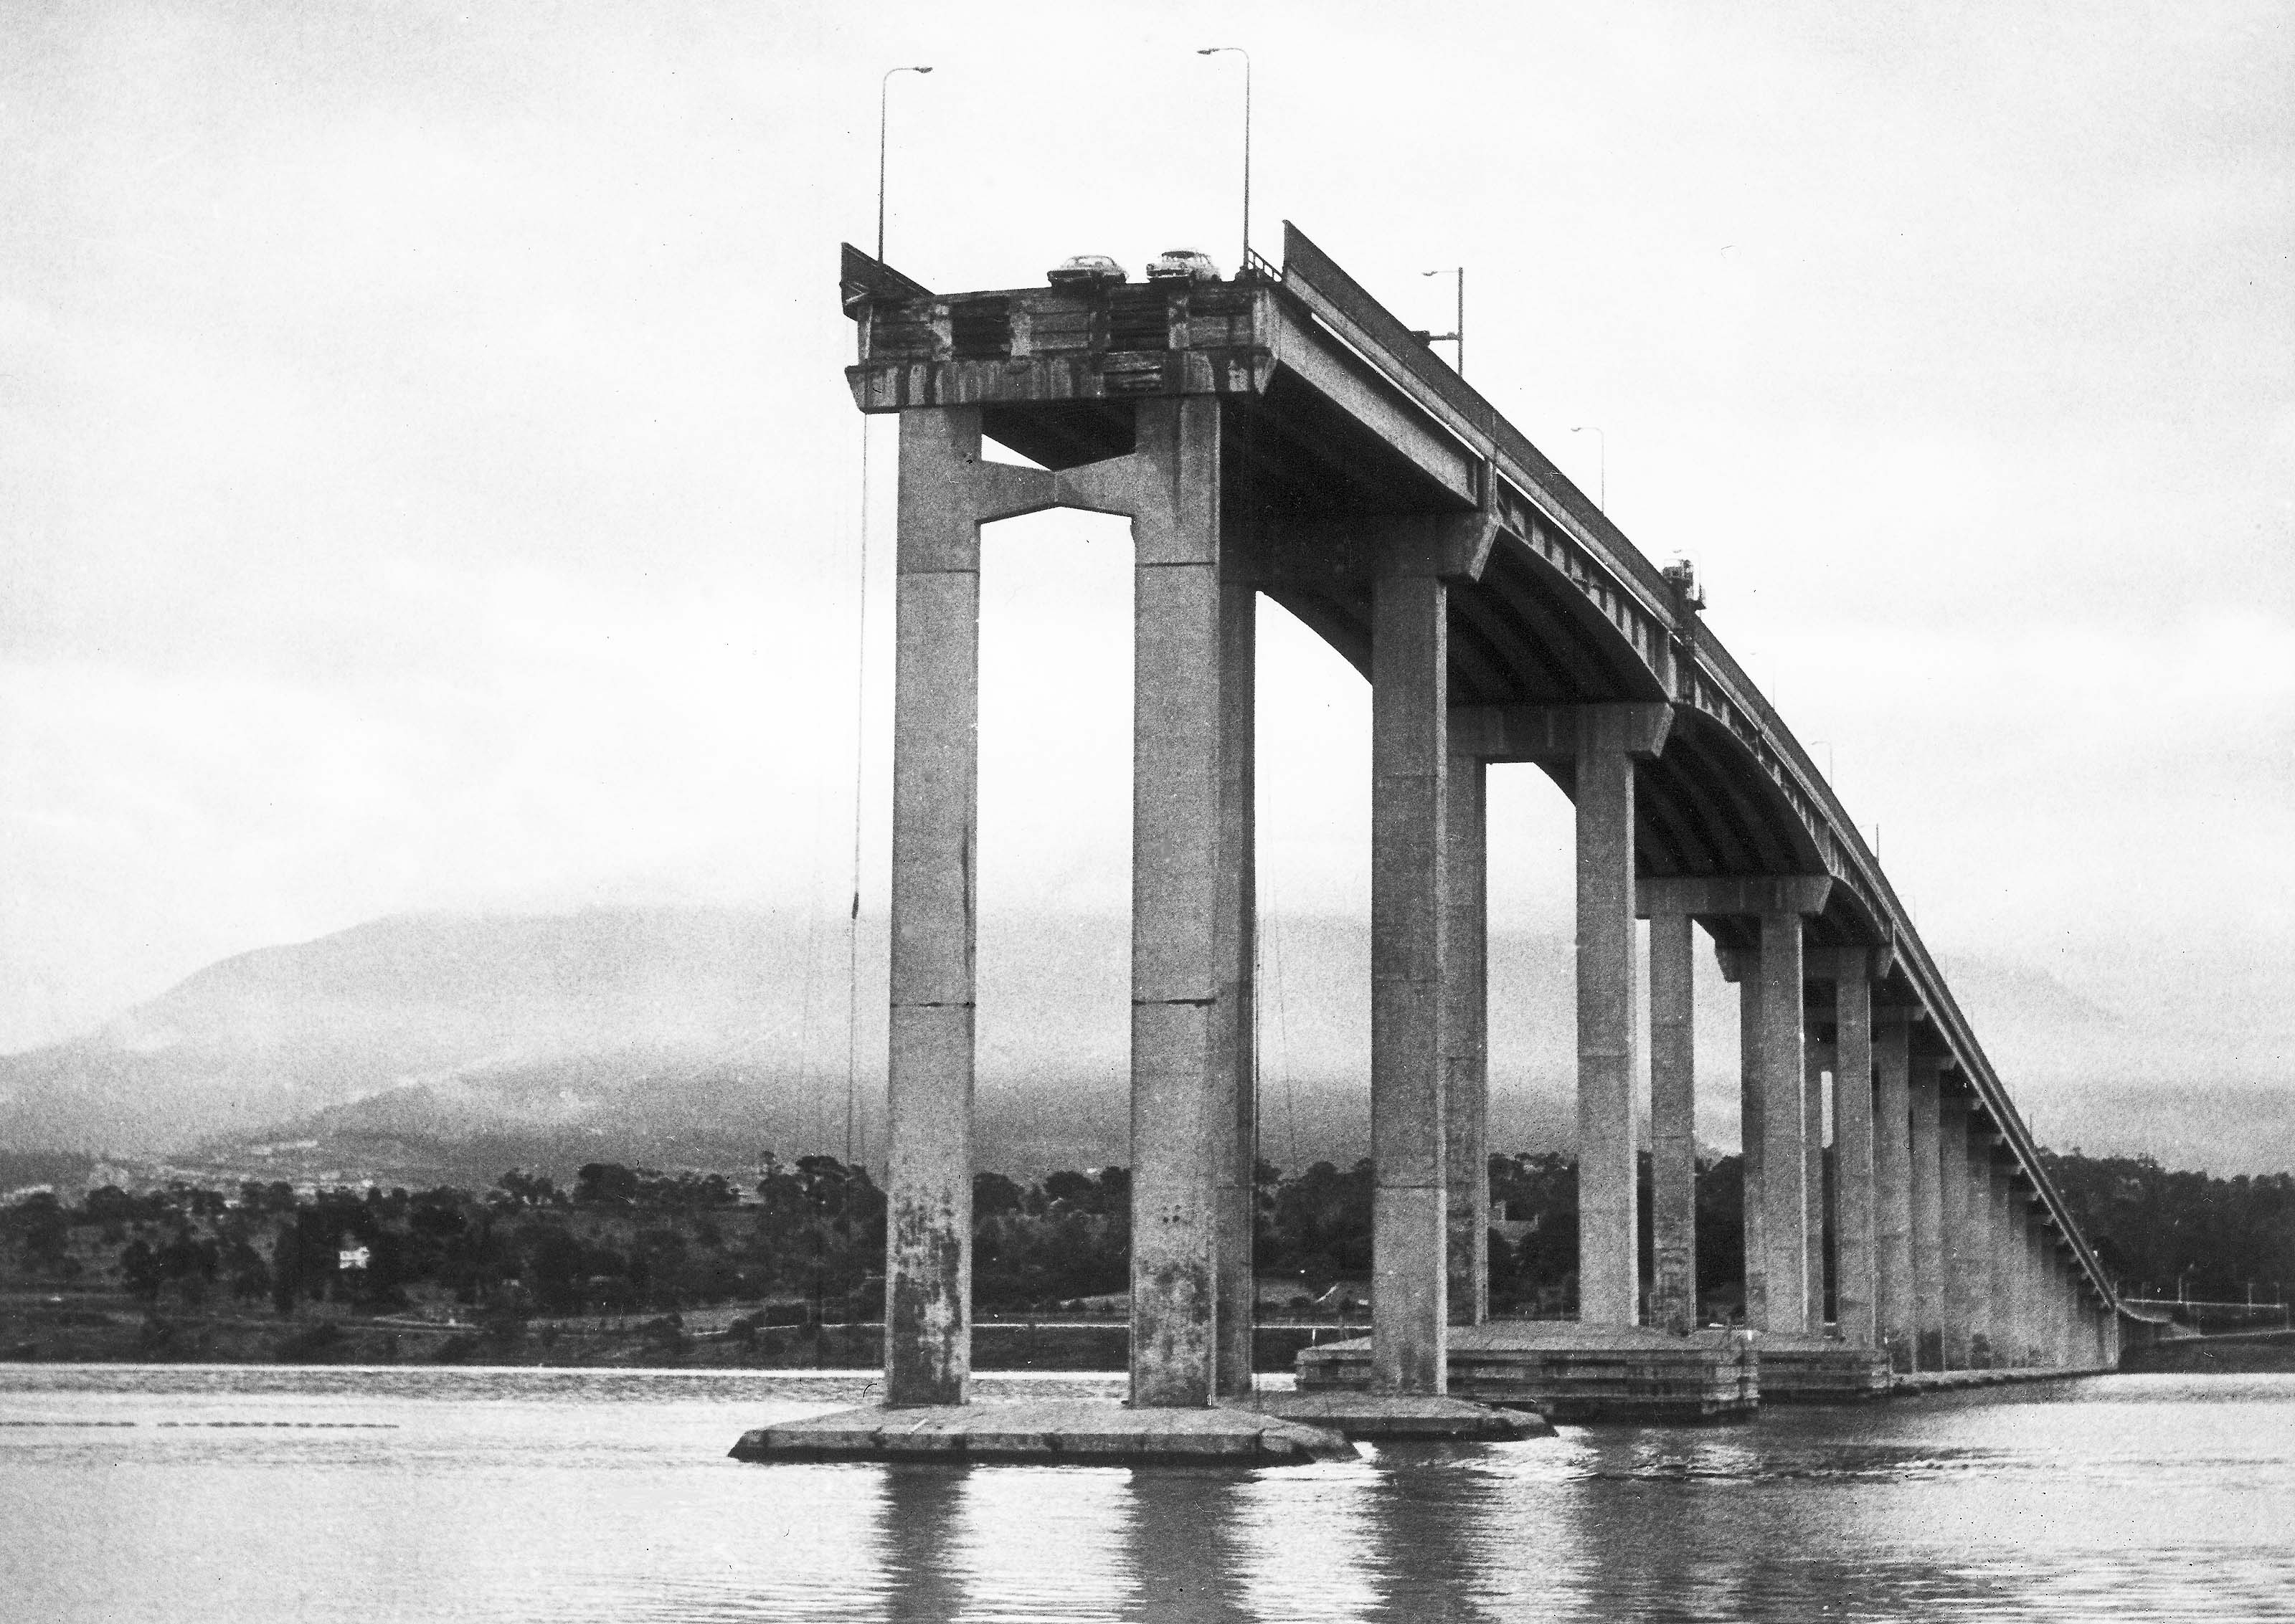 Two cars hang over the edge of the Tasman Bridge, Hobart, Tasmania, Jan. 6, 1975, after it had been rammed by Lake Illawarra, bulk ore carrier the previous evening. Four cars plunged into the River Derwent after 240-feet span of the bridge collapsed onto the deck of the carrier, sinking the ship within minutes. Five motorists and seven crewmen were killed in the collision. (AP Photo)